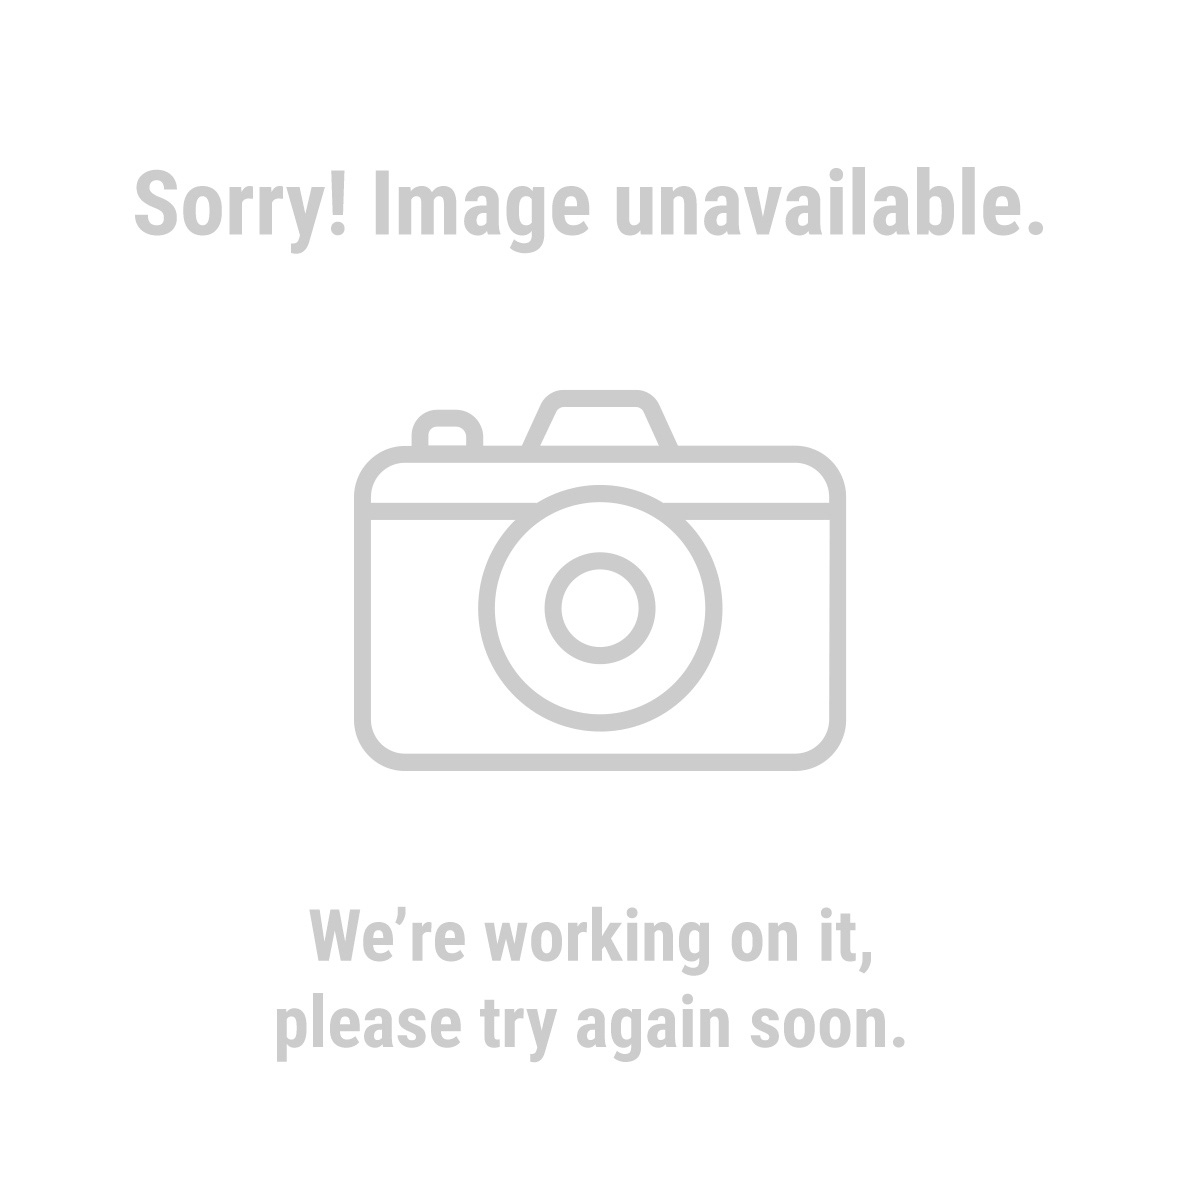 ShelterLogic 68775 10 ft. x 10 ft. Shed-in-a-Box® with Tan Cover